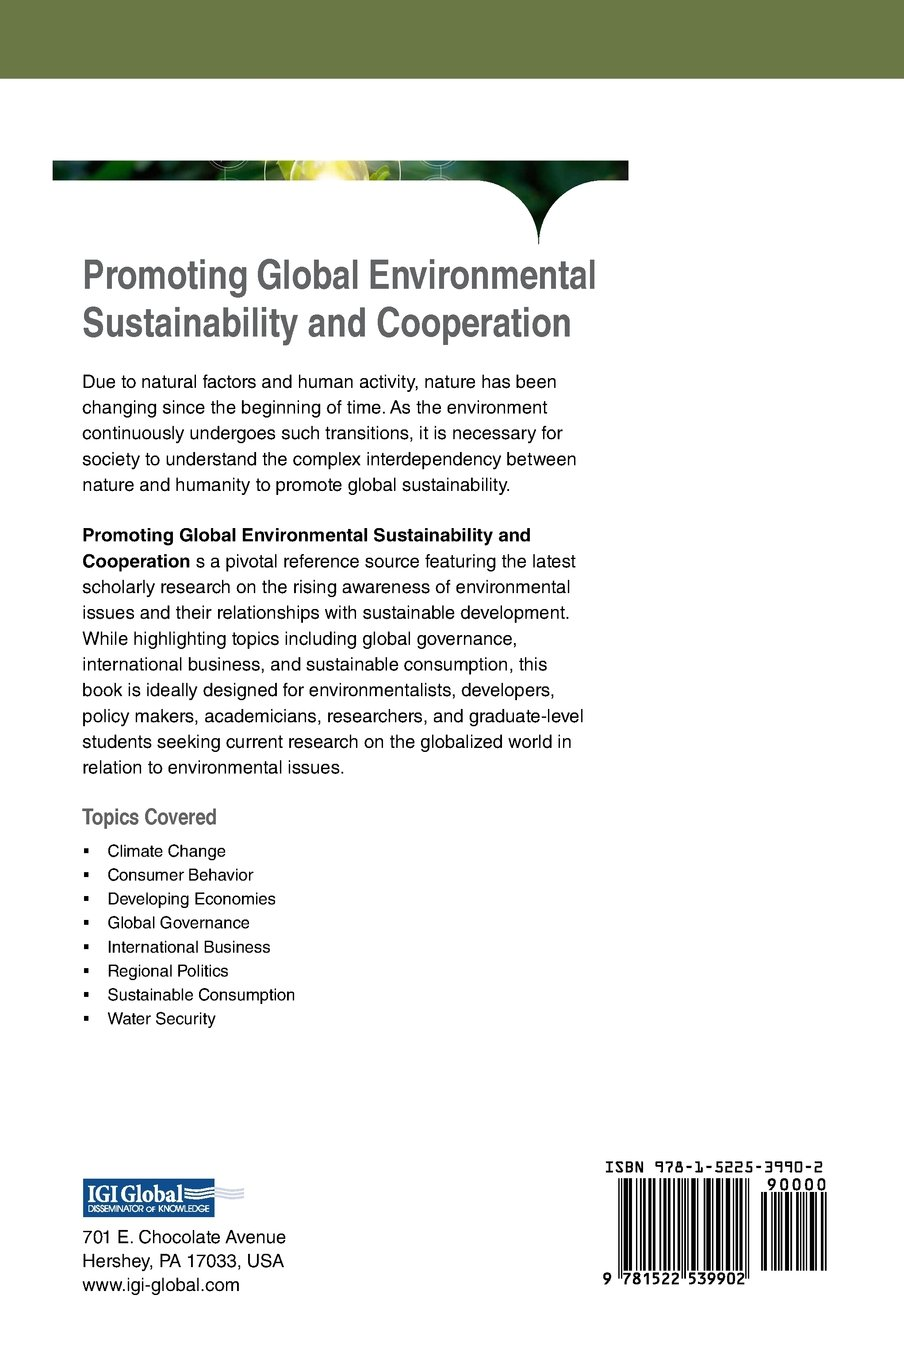 Promoting Global Environmental Sustainability and